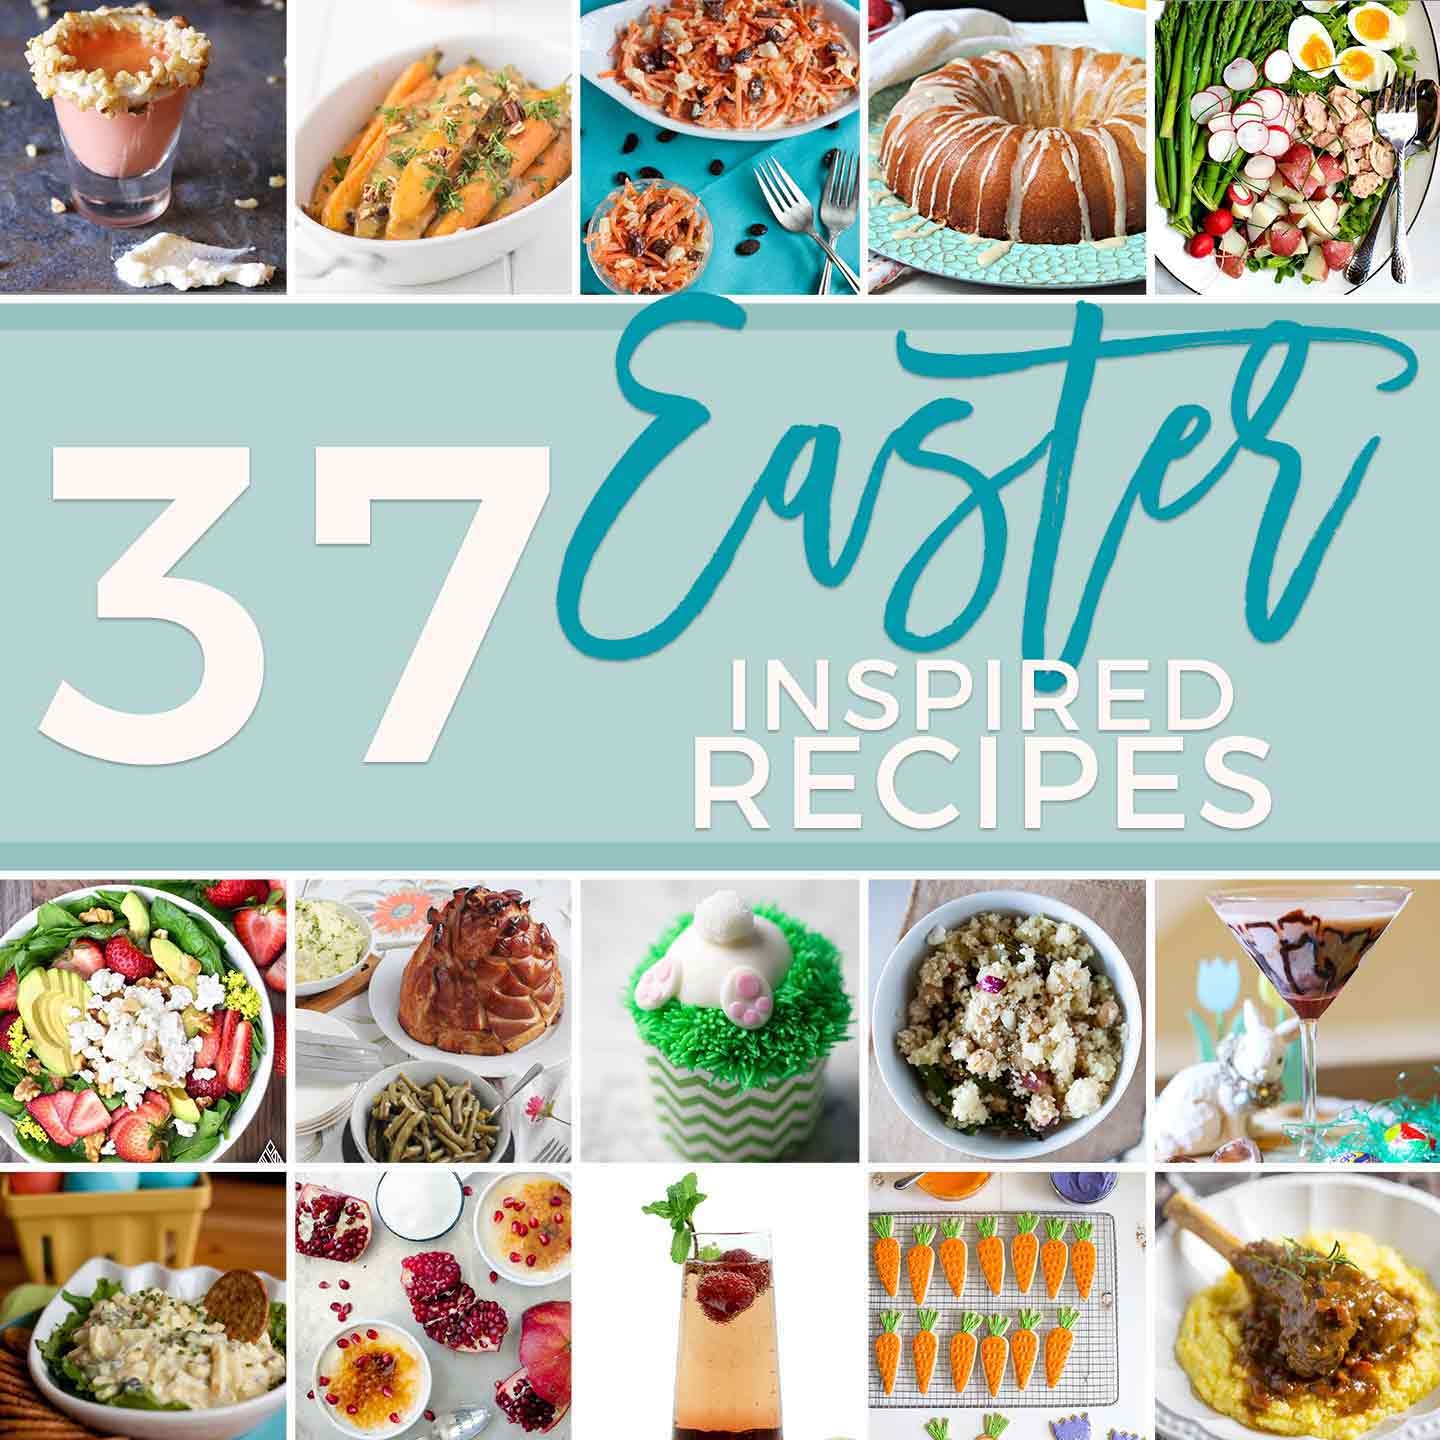 Collage of food images with the text '37 easter inspired recipes'